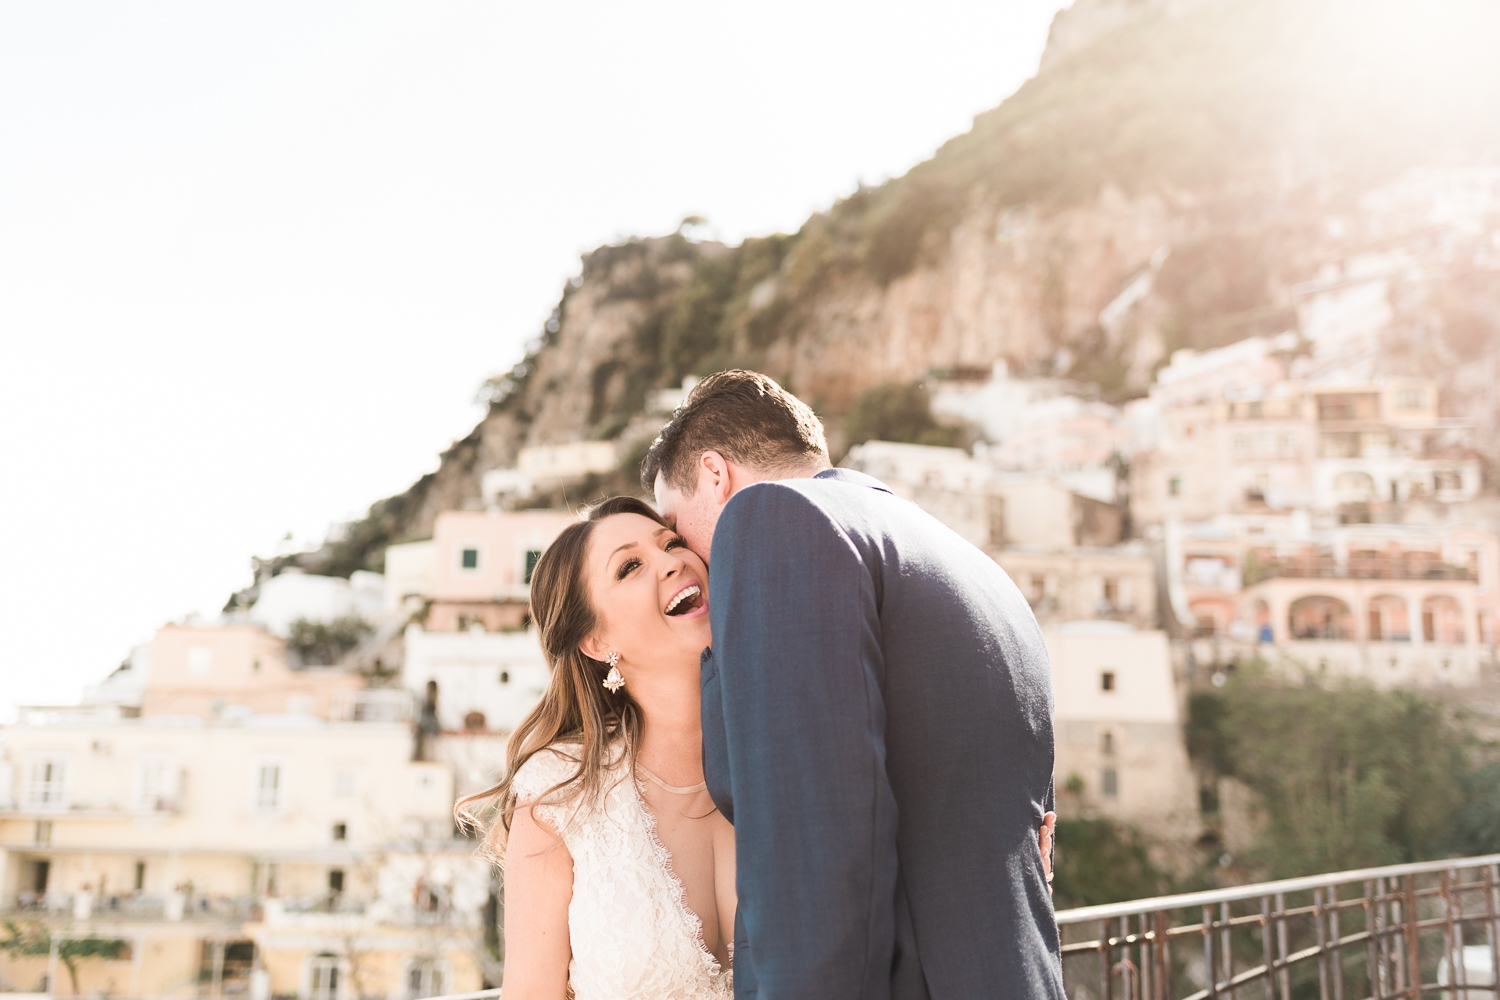 positano-wedding-photographer 19.jpg